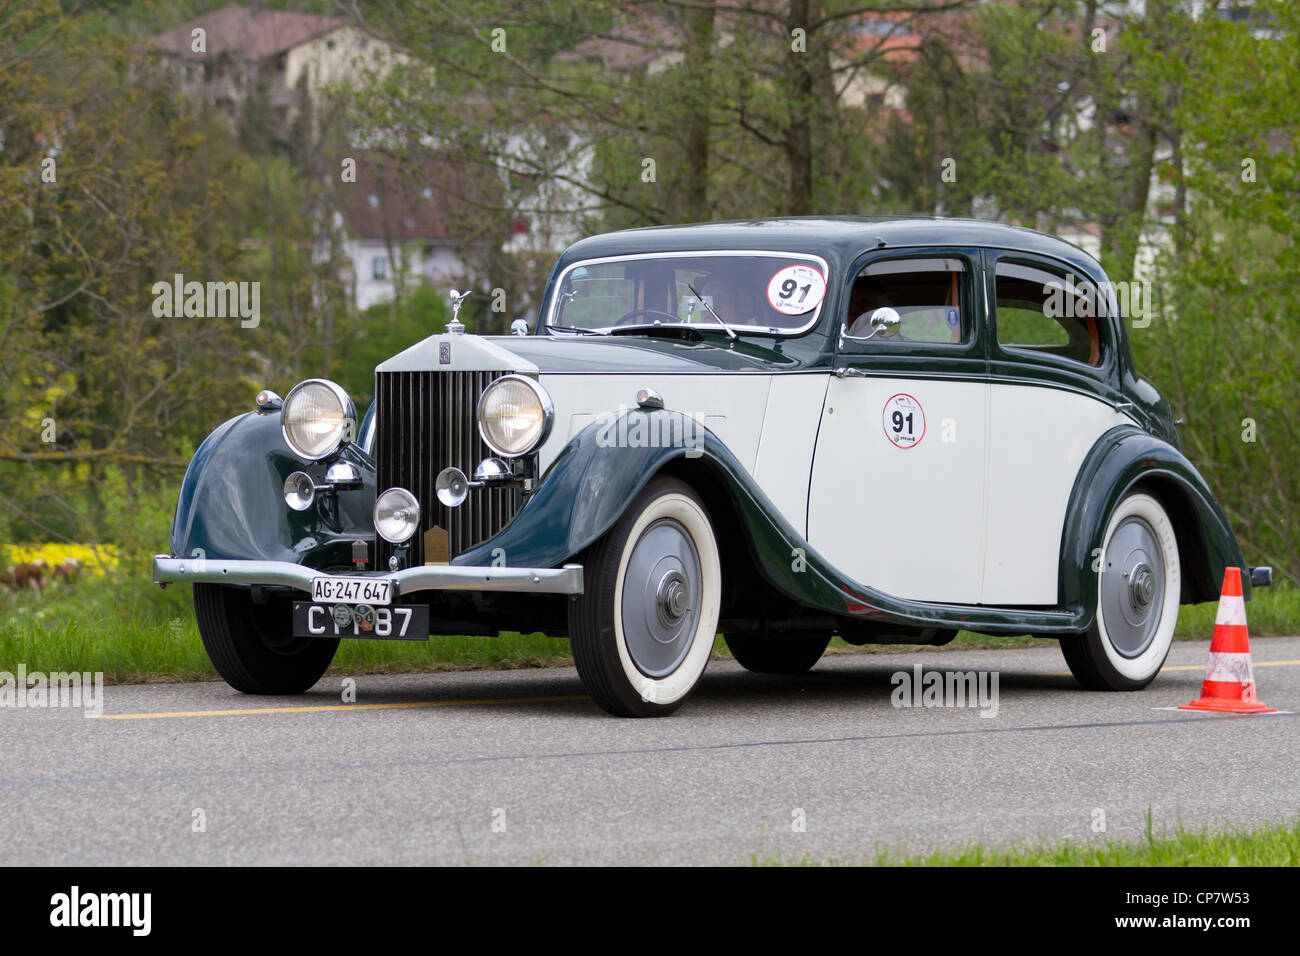 vintage pre war race car rolls royce 25 30 from 1936 at grand prix in stock photo royalty free. Black Bedroom Furniture Sets. Home Design Ideas